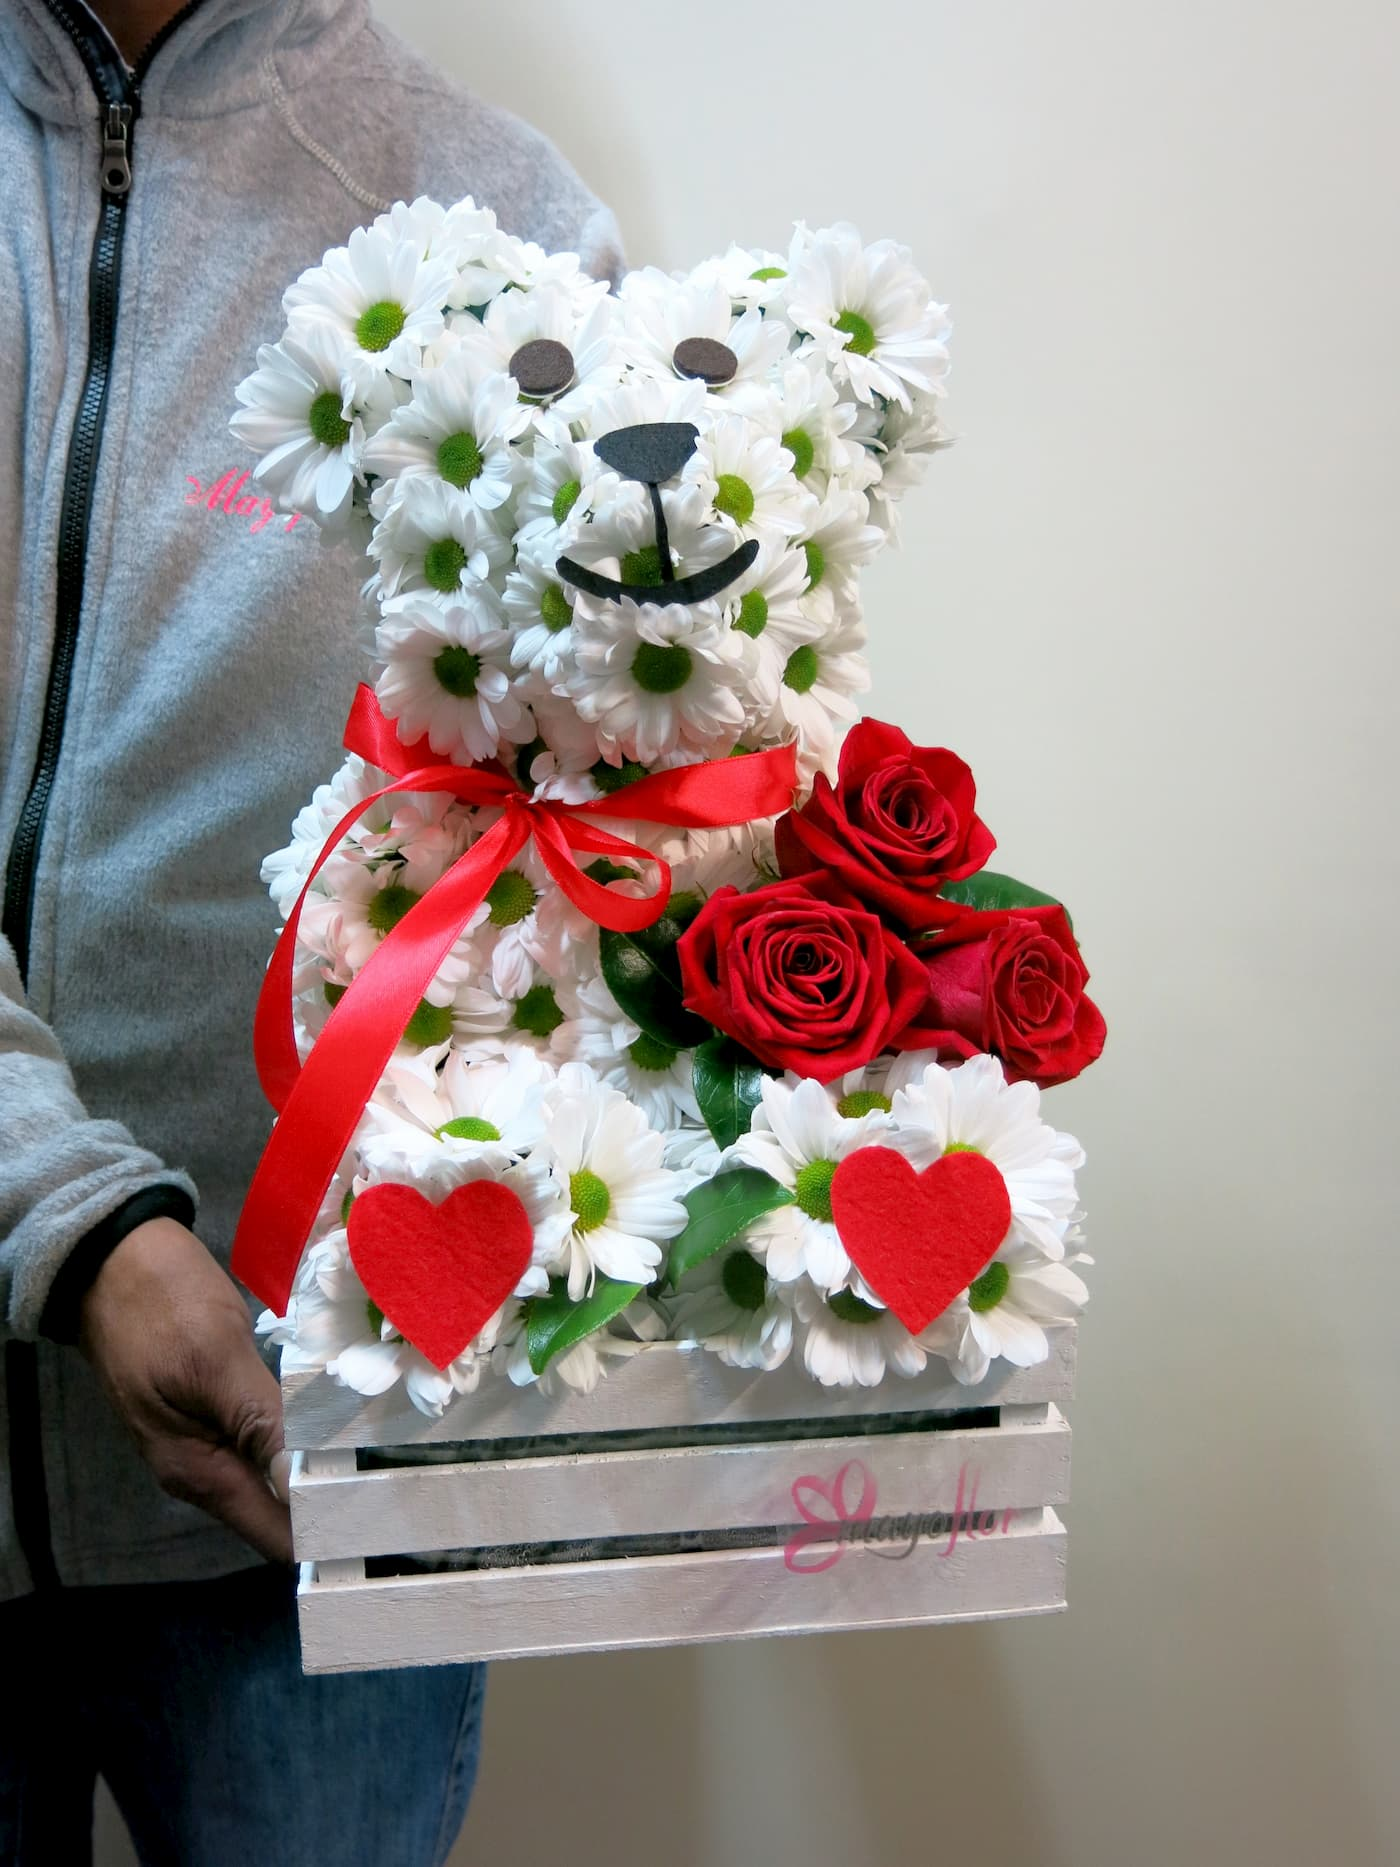 The Roses are brought by the teddy bear made of white daisies. - Foto 4